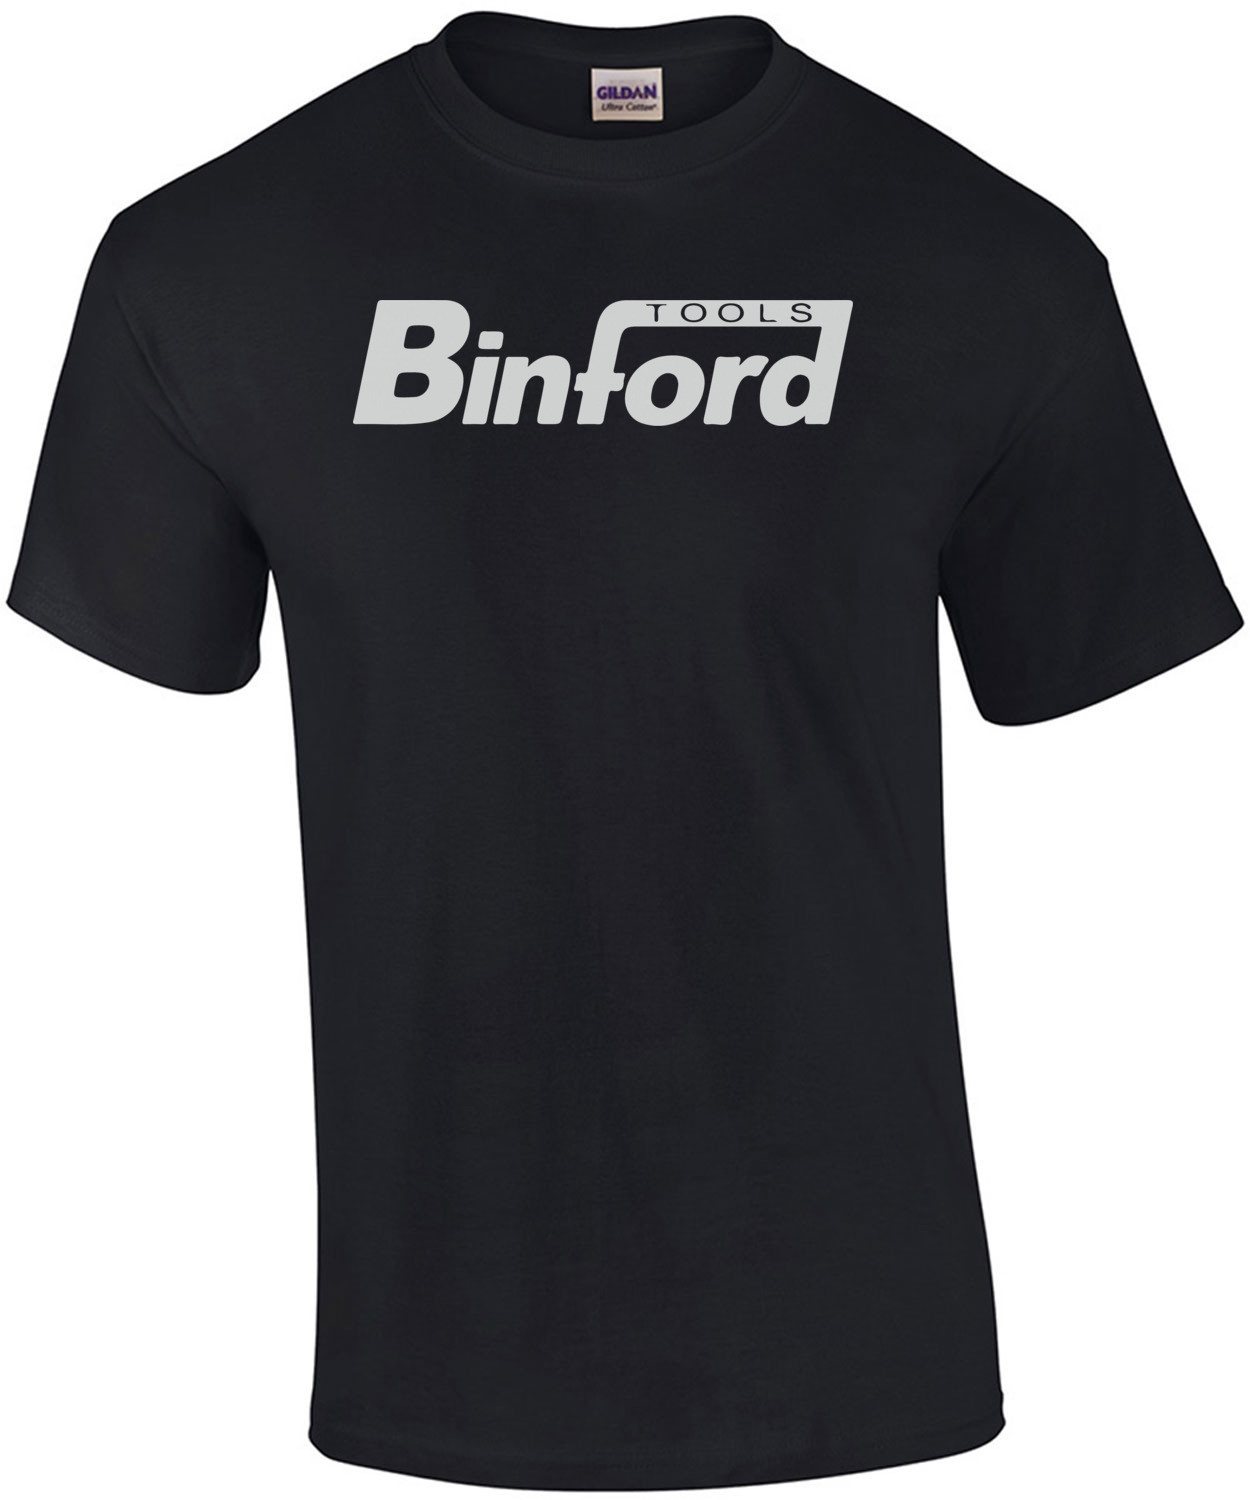 Binford Tools Home Improvement T-Shirt